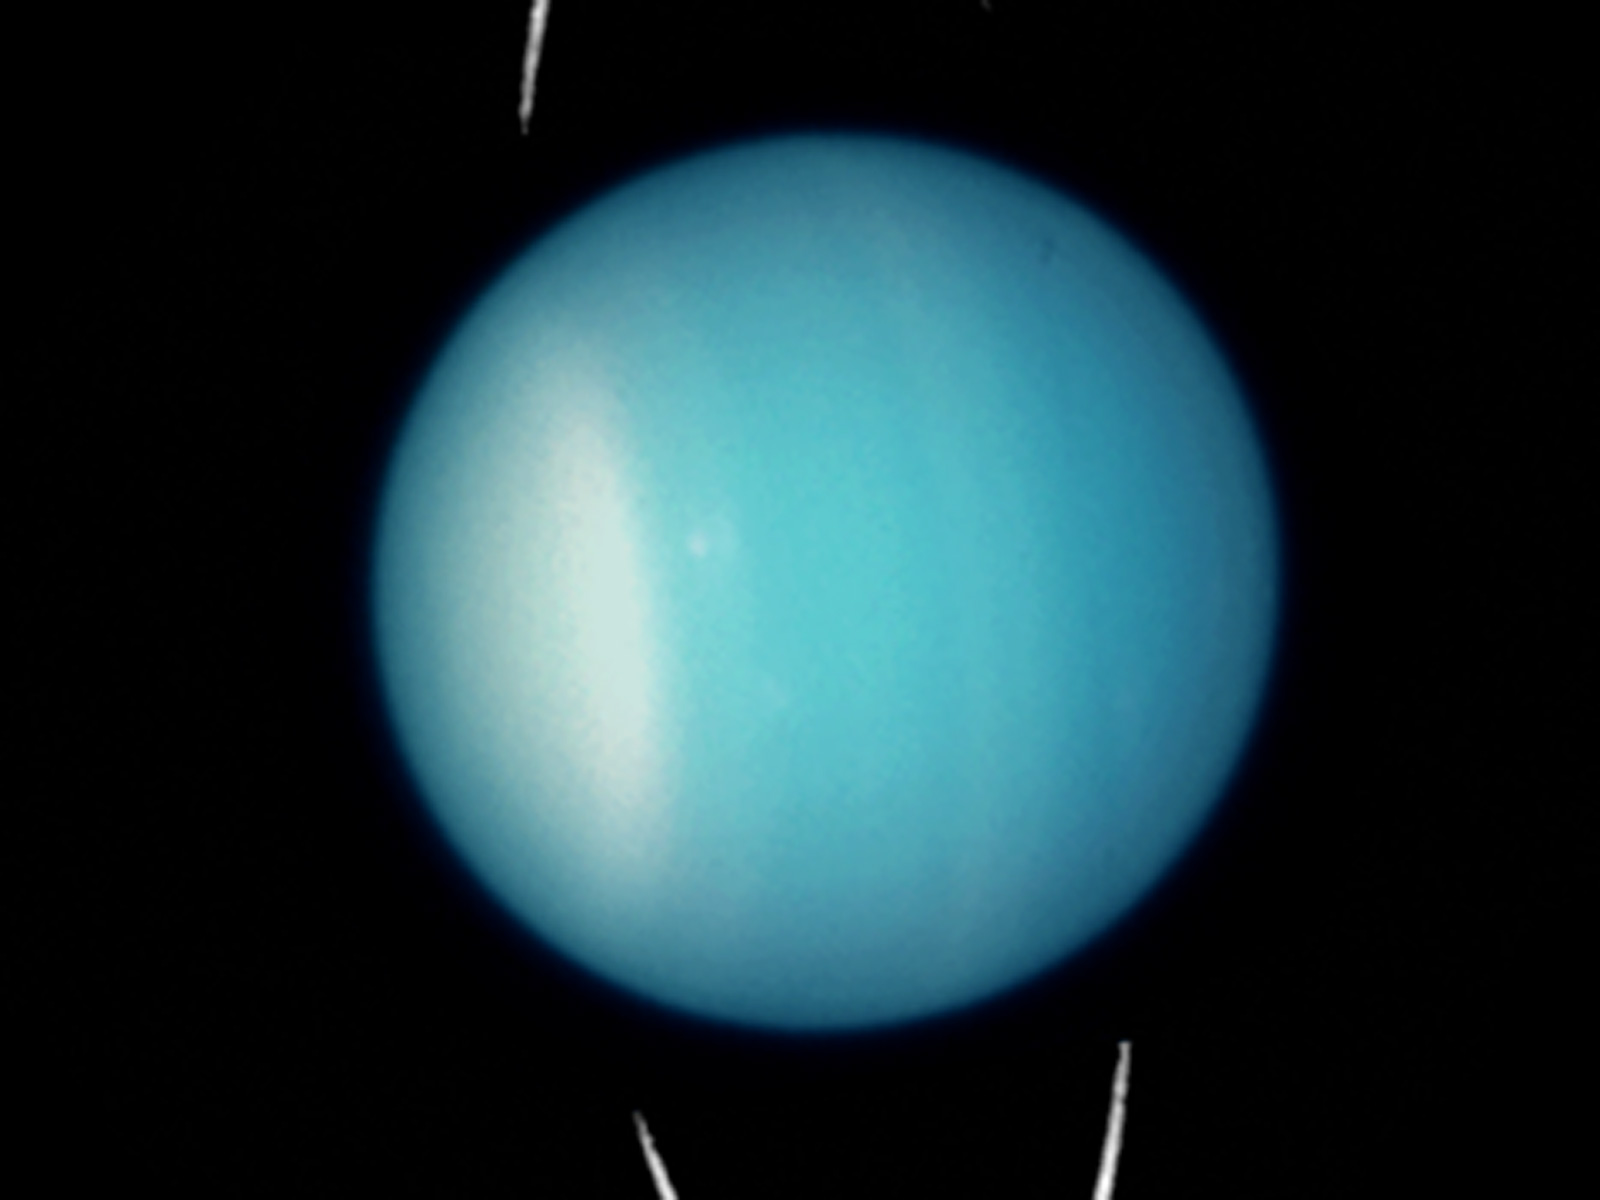 Uranus 2003 Unannotated Esa Hubble